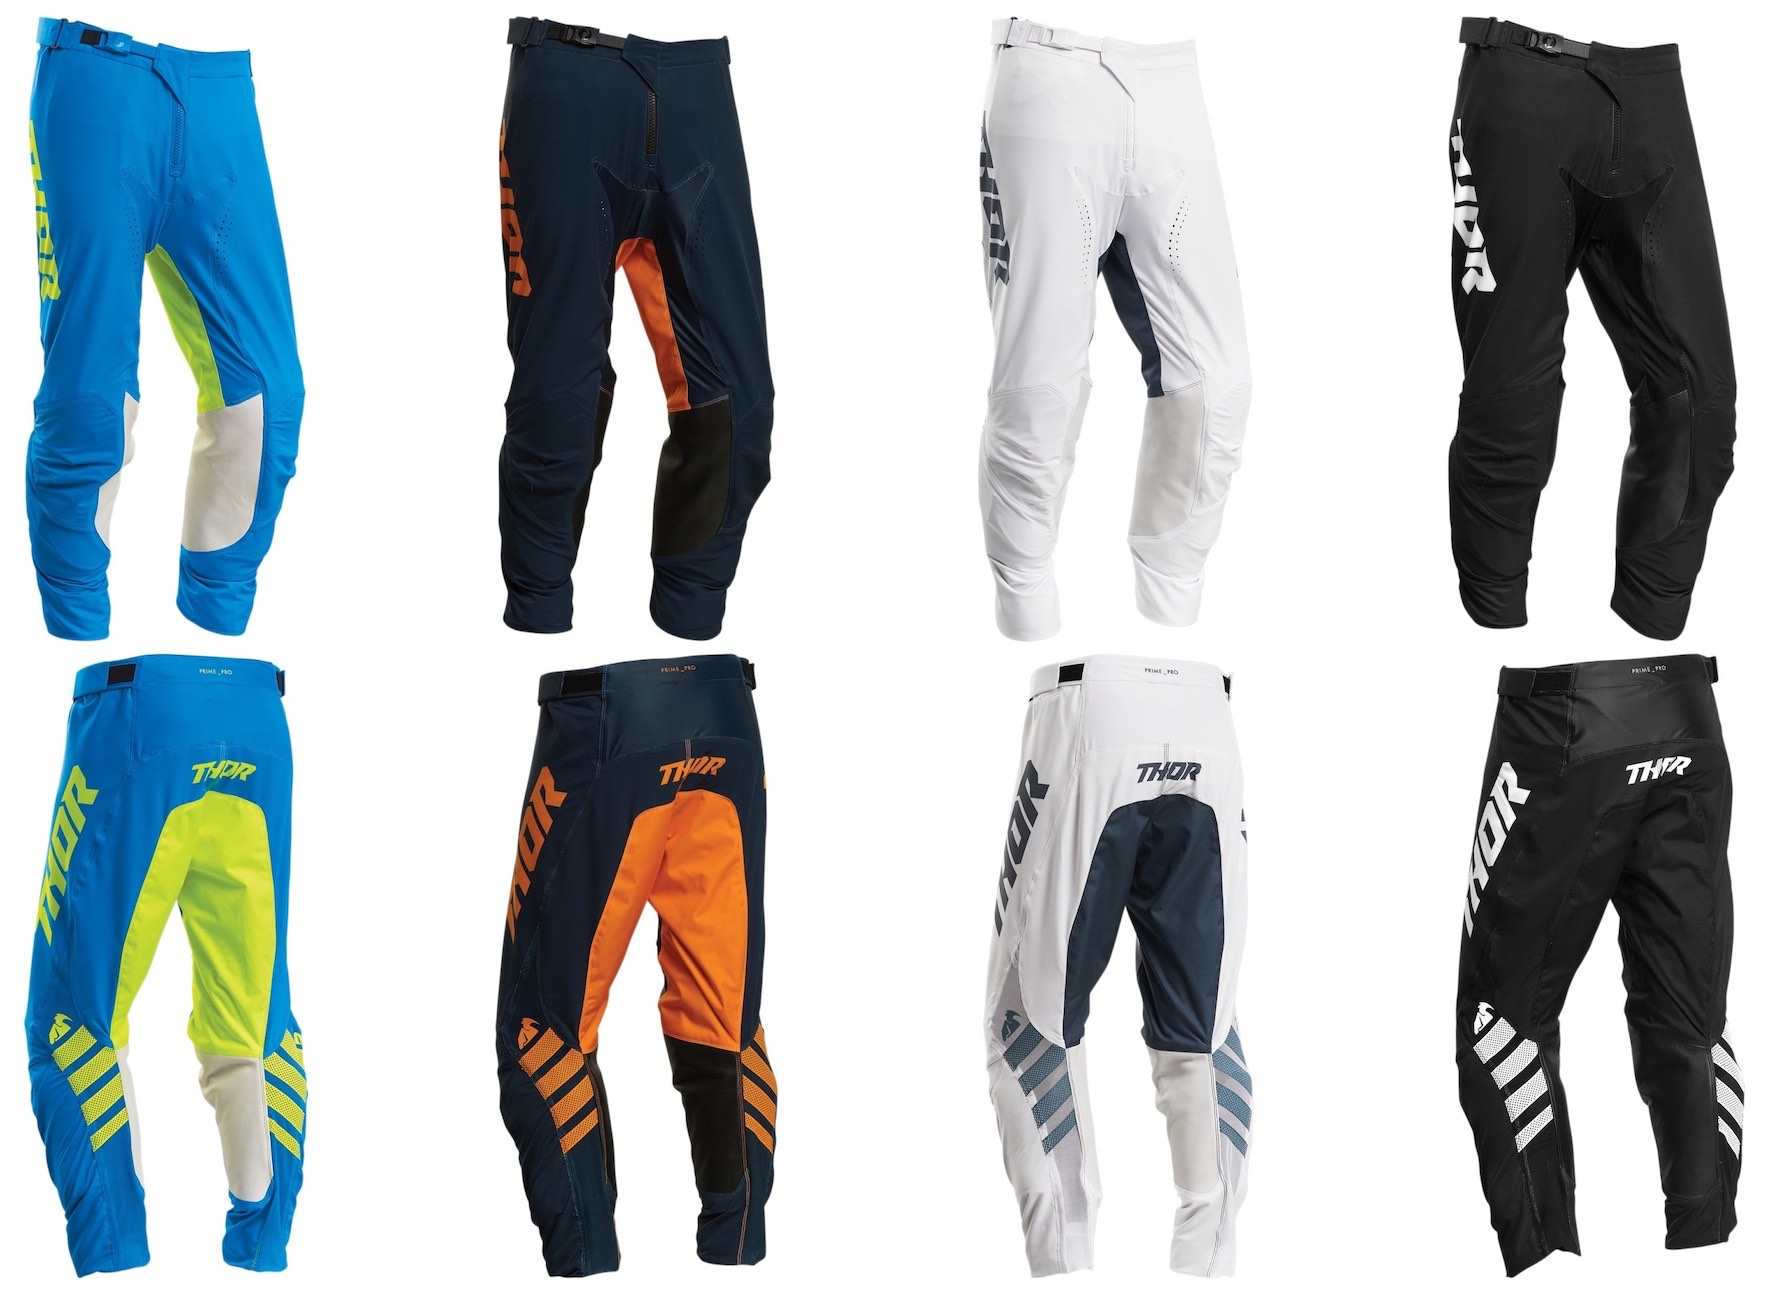 The 2020 Thor MX Prime Pro Pants options